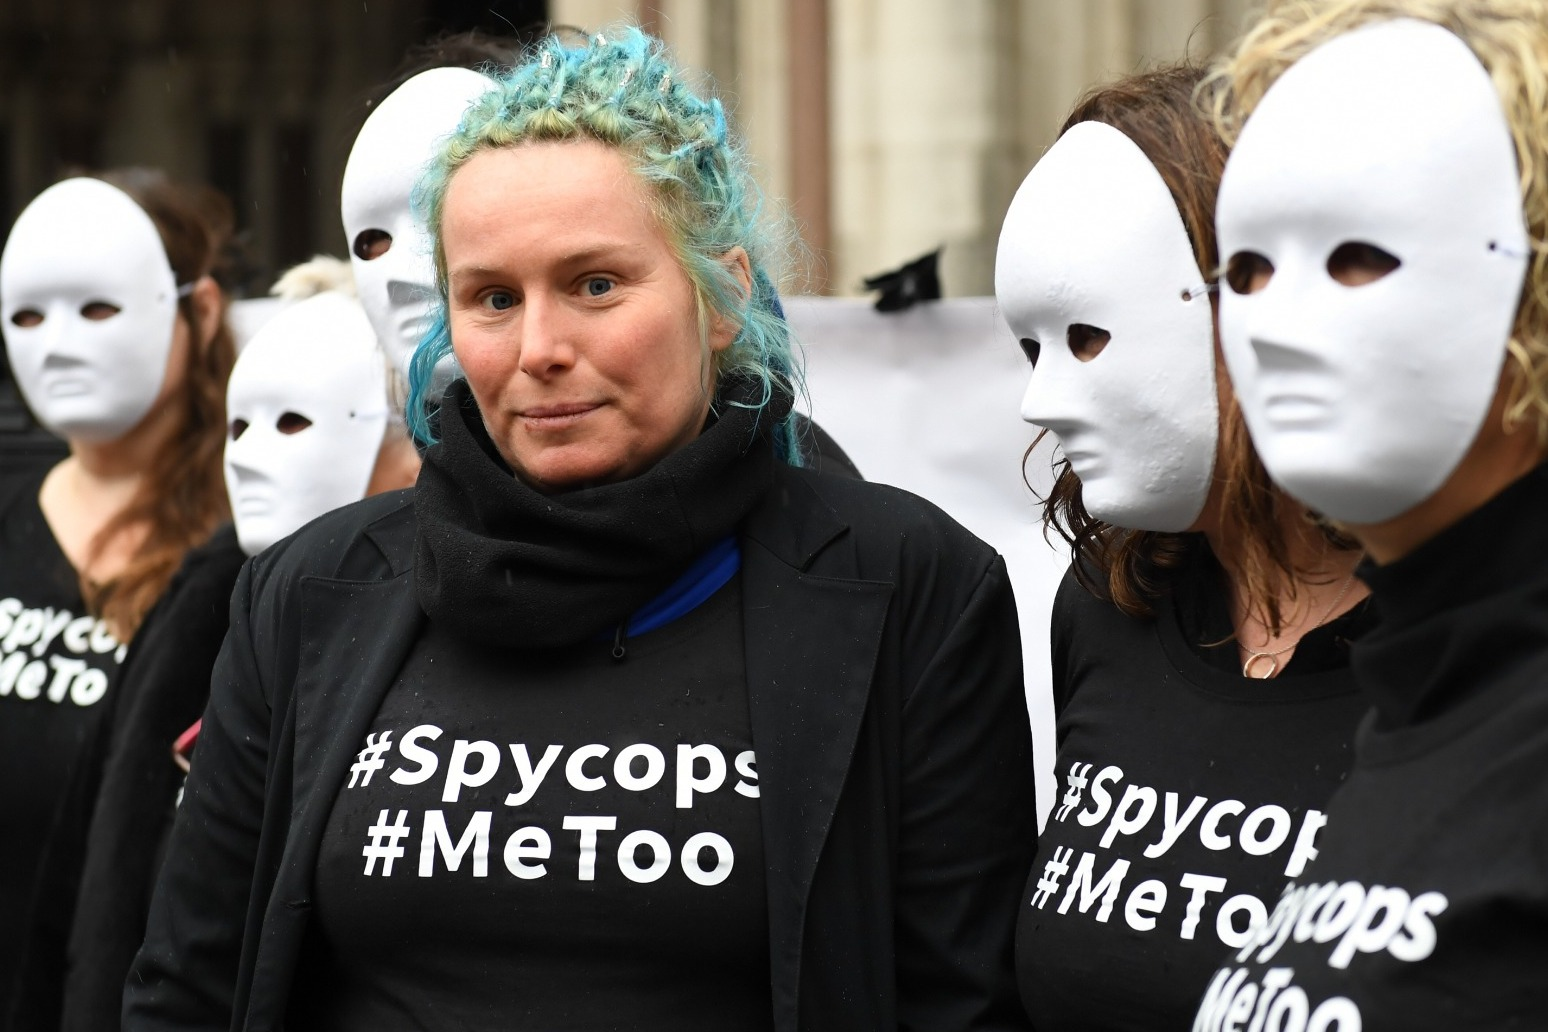 Activist deceived into relationship with undercover officer wins tribunal case